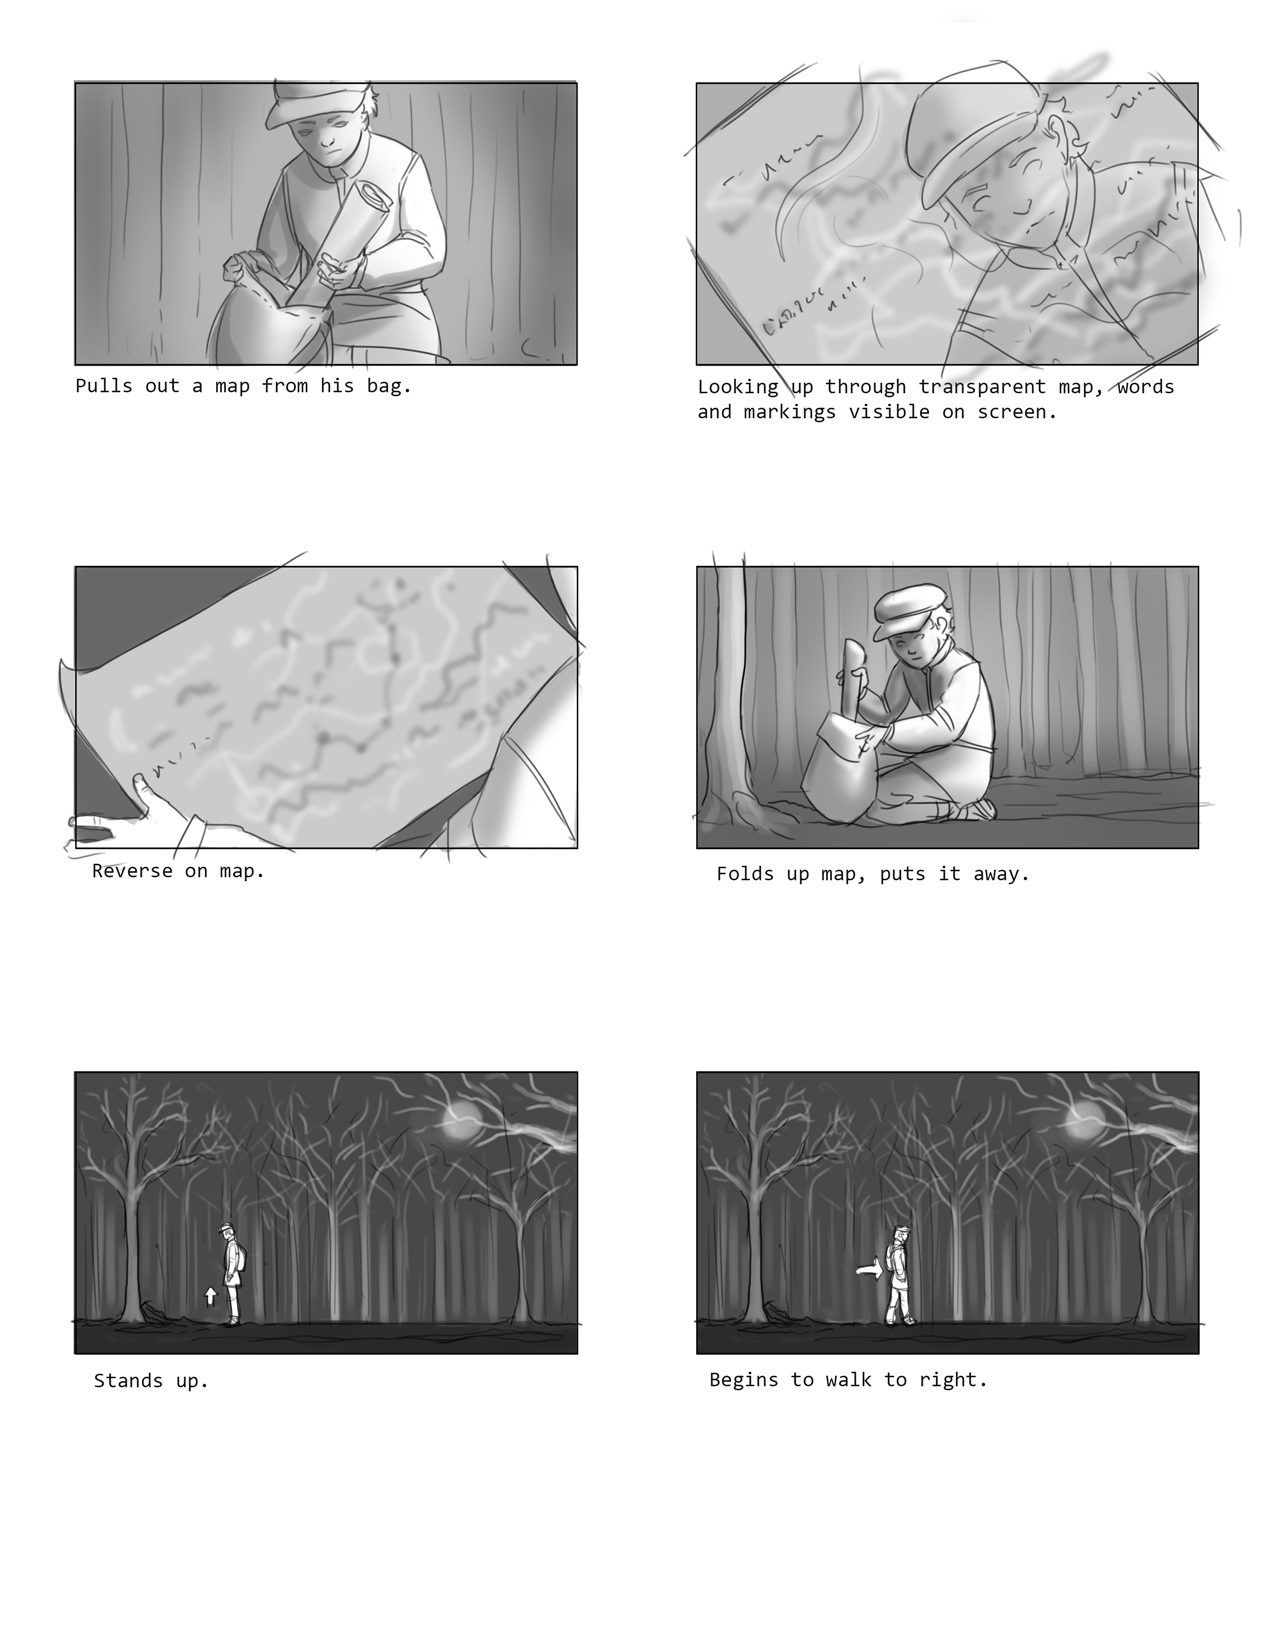 velorenstoryboards02.jpg